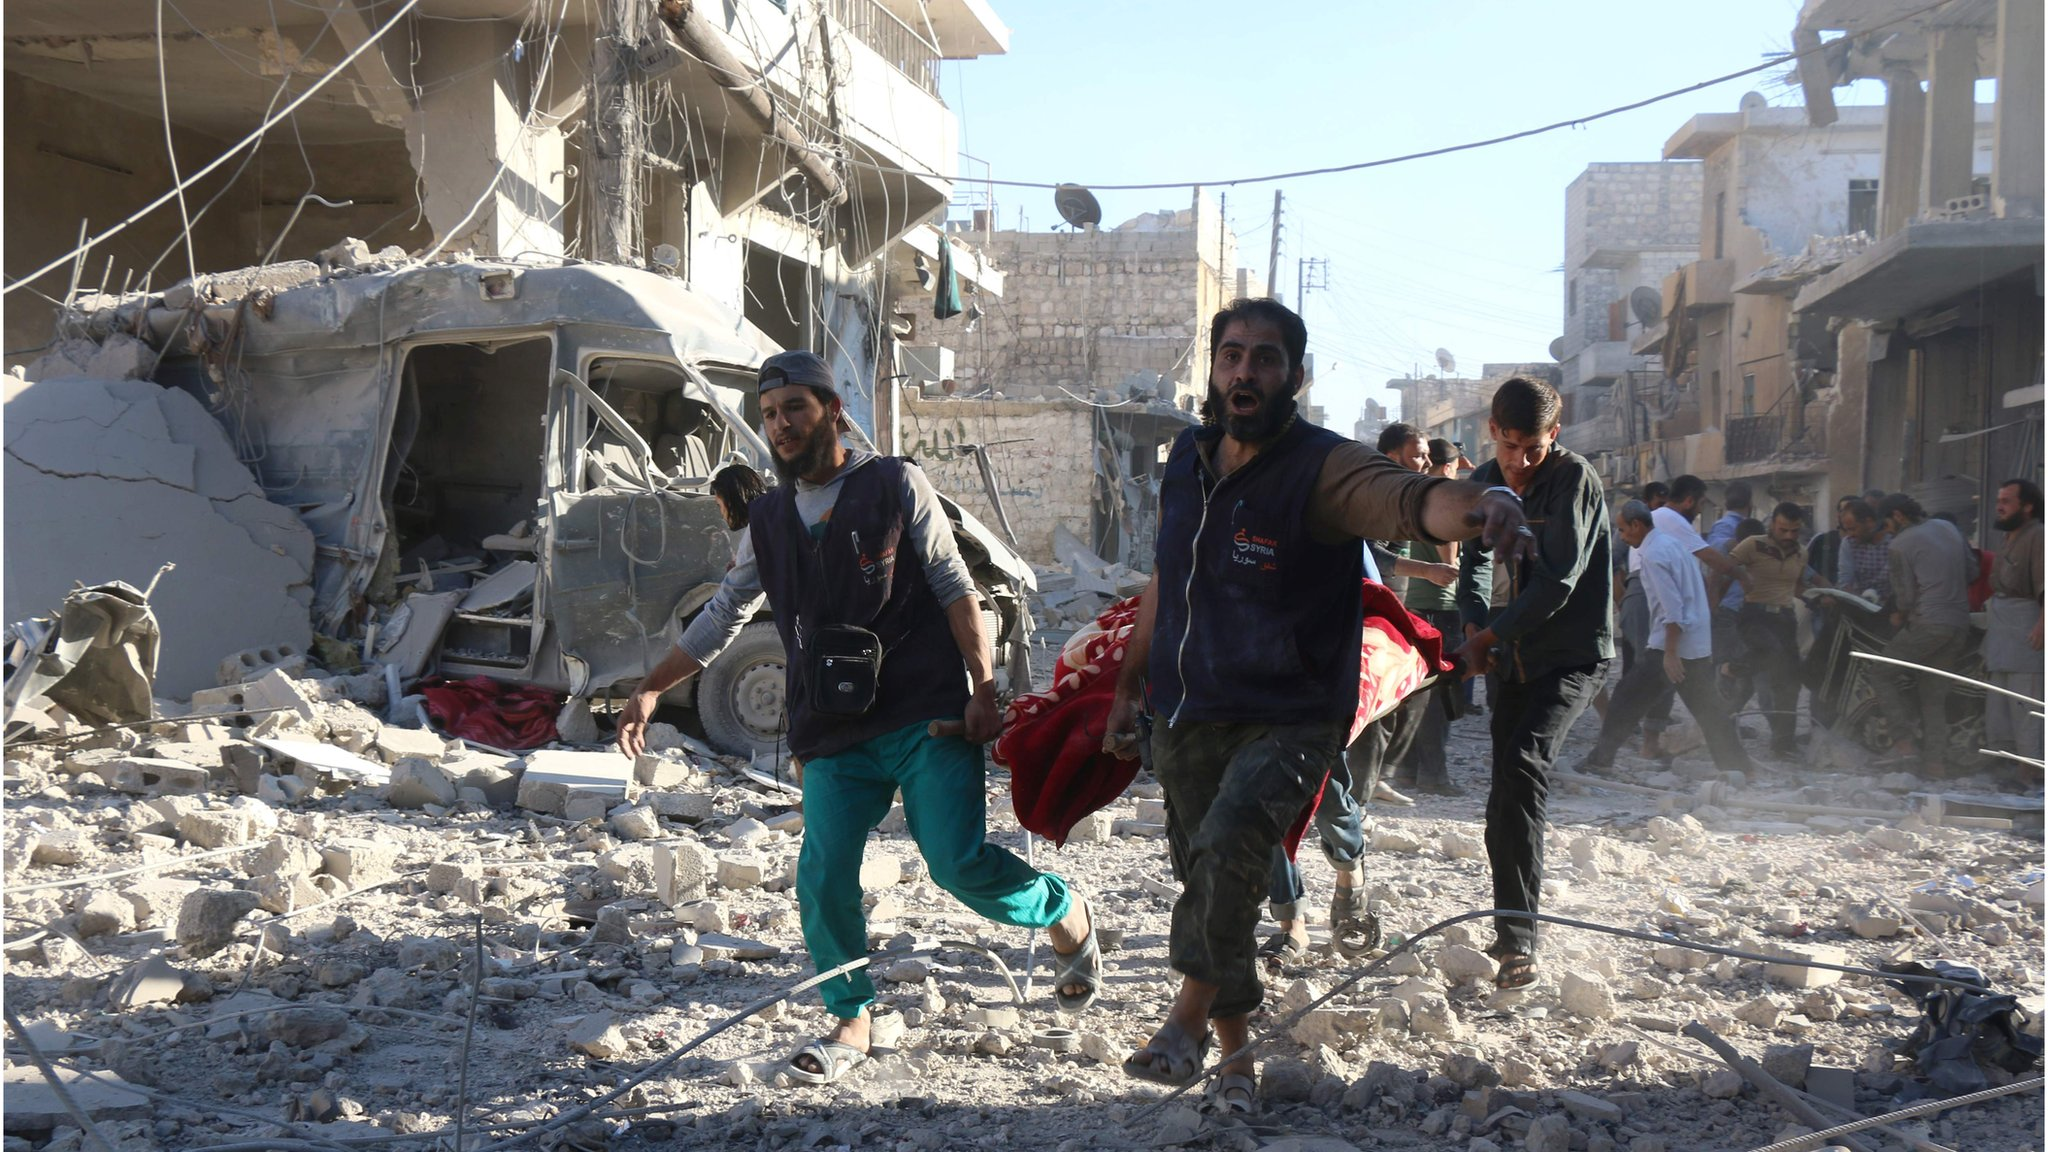 Syria conflict: US says Russia driving rebels into extremists' camp